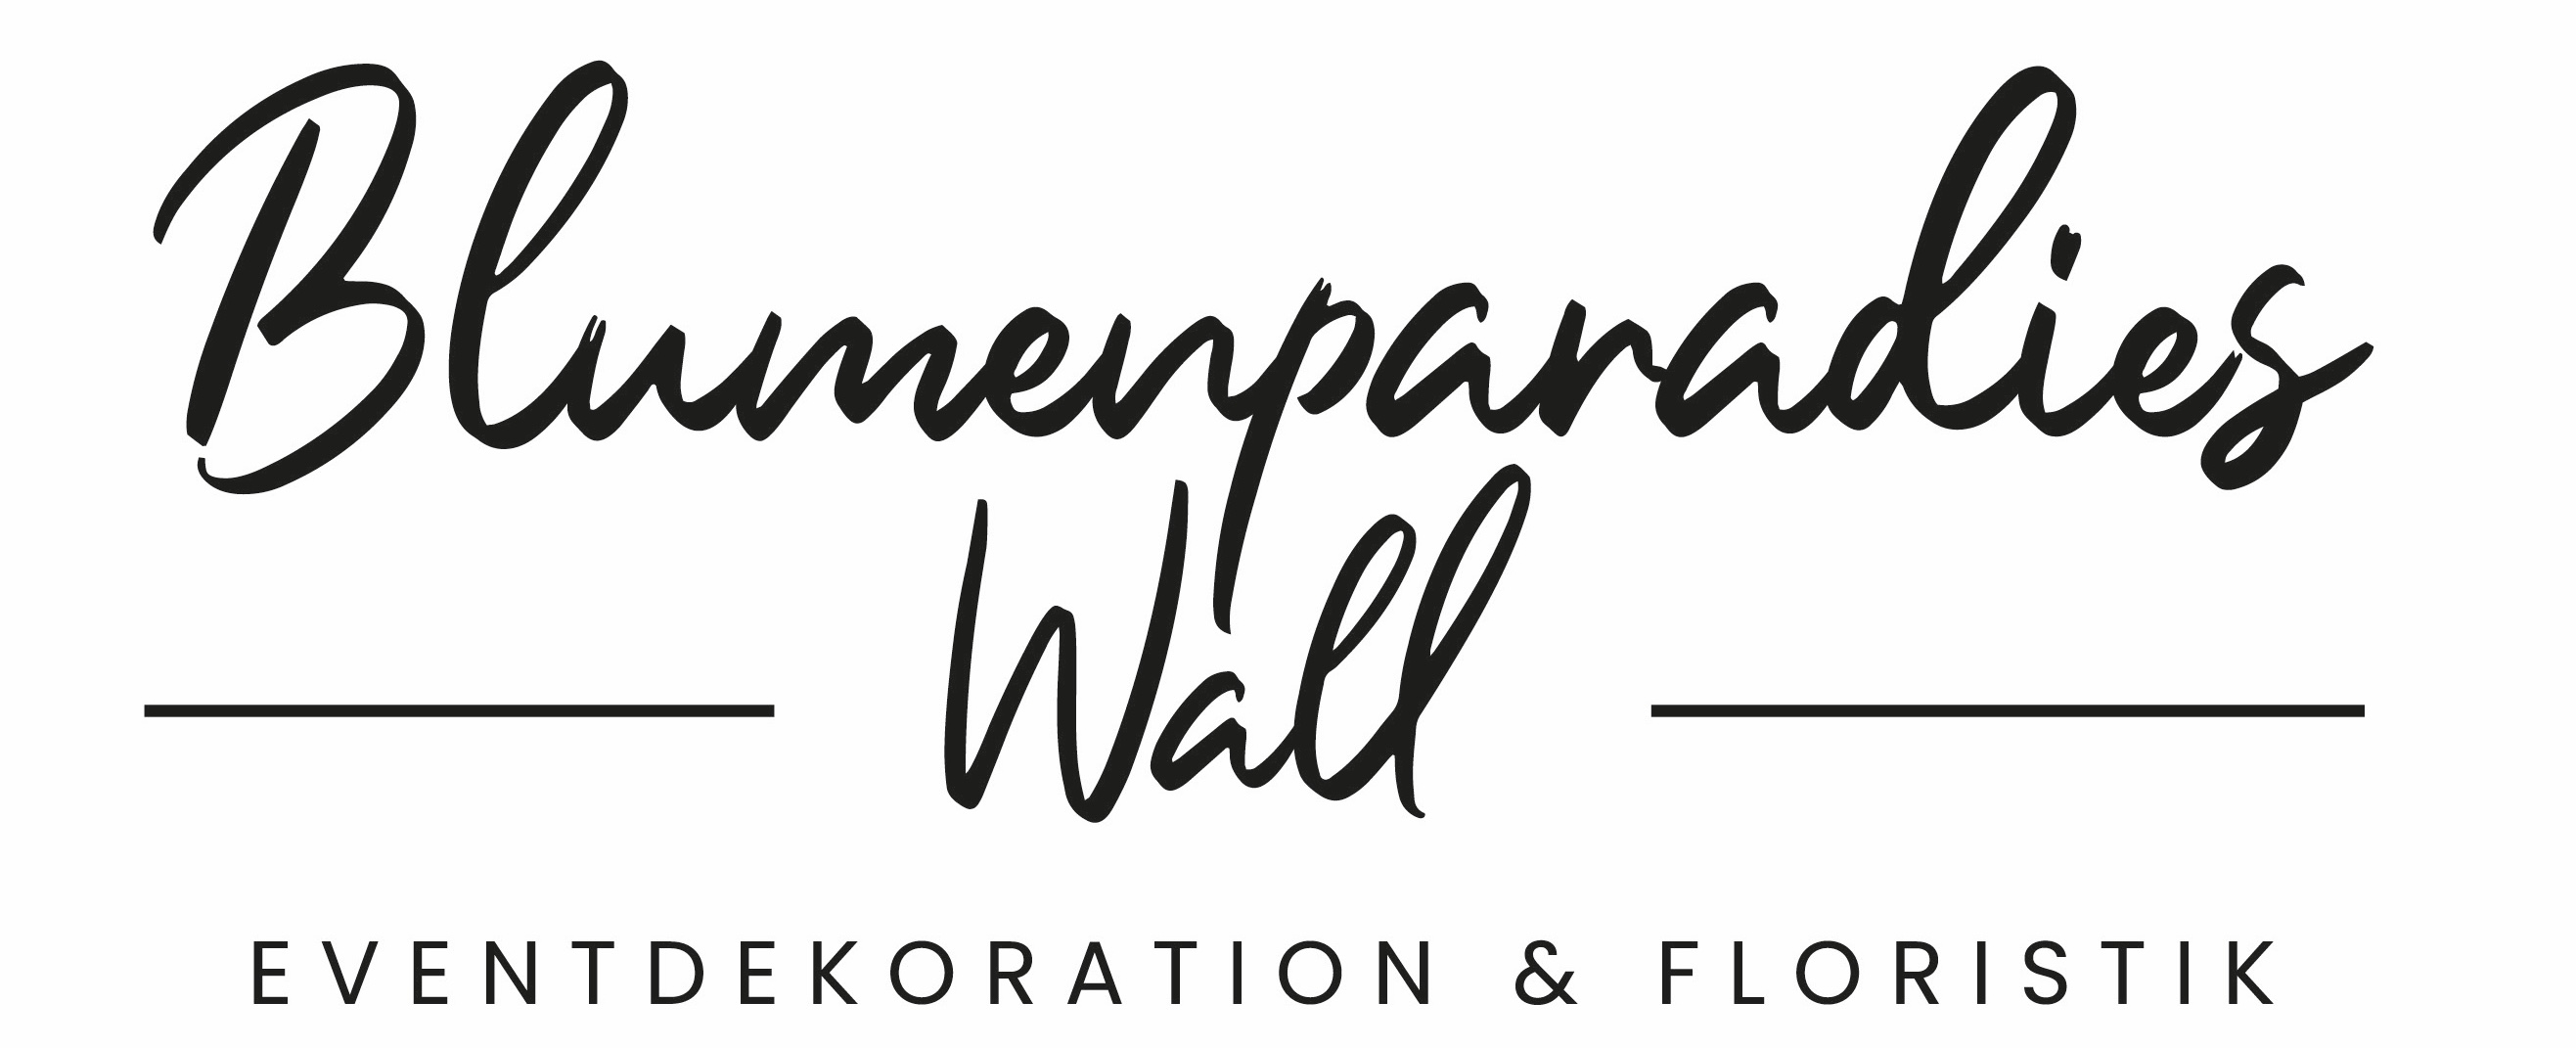 Blumenparadies Wall - Shop